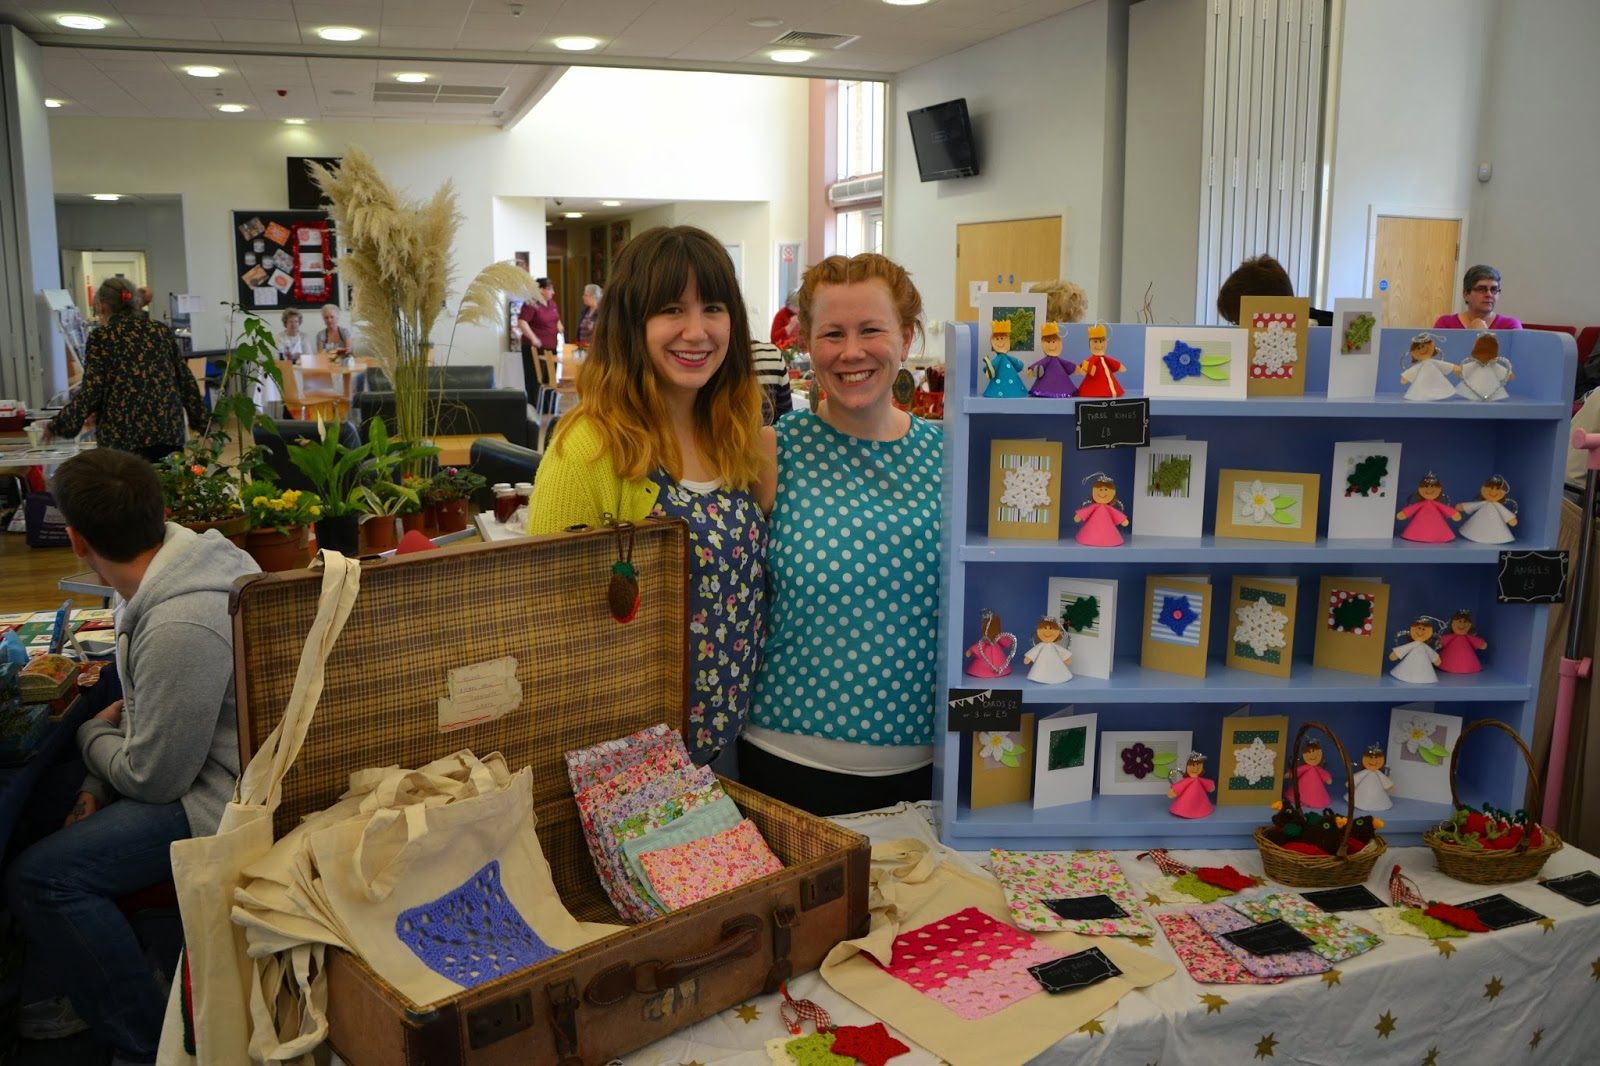 Tadpegs: 14 Tips For Beginner Craft Fair Sellers  Top Selling Craft Show Items